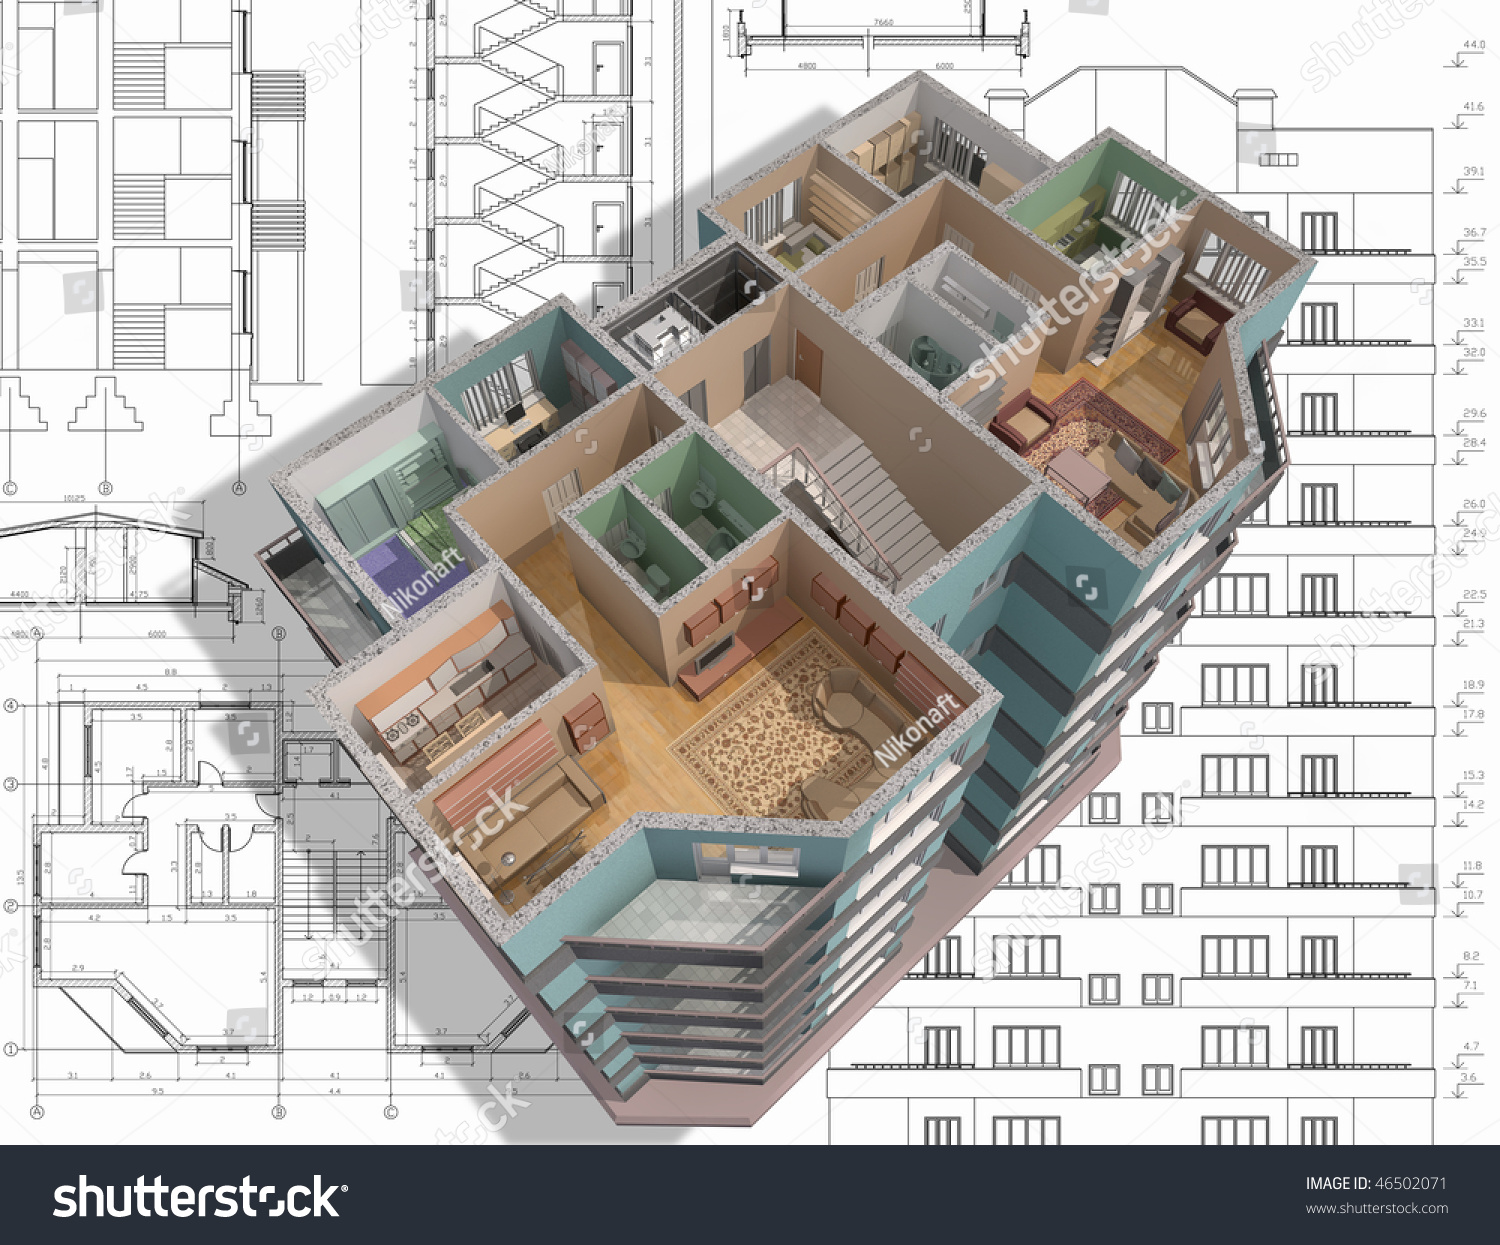 3d isometric view the cut residential house on architect u0026 39 s